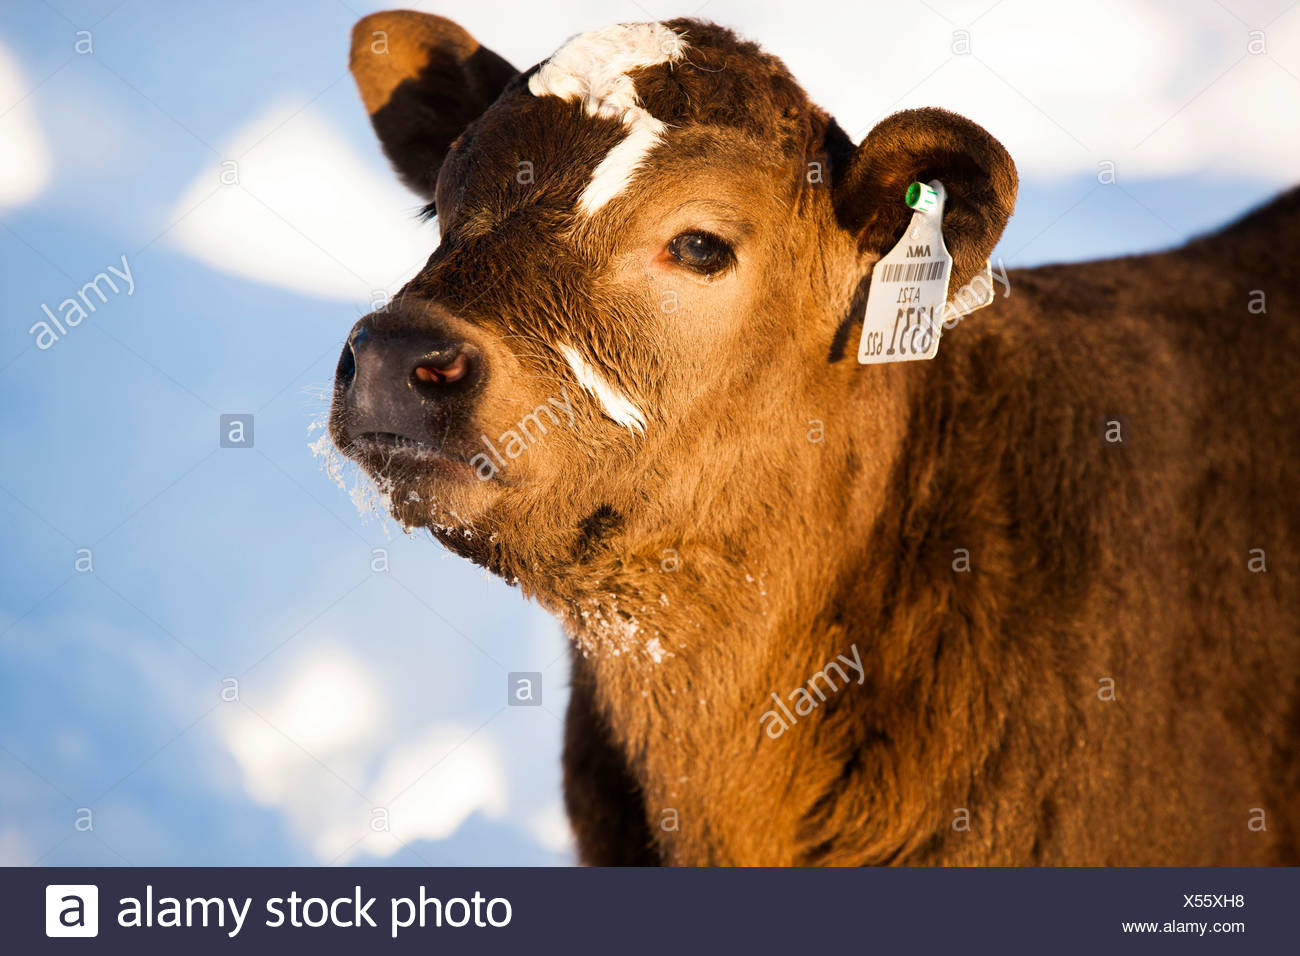 Calf in the snow, half-breed Angus and Simmental Cattle, North Tyrol, Austria - Stock Image